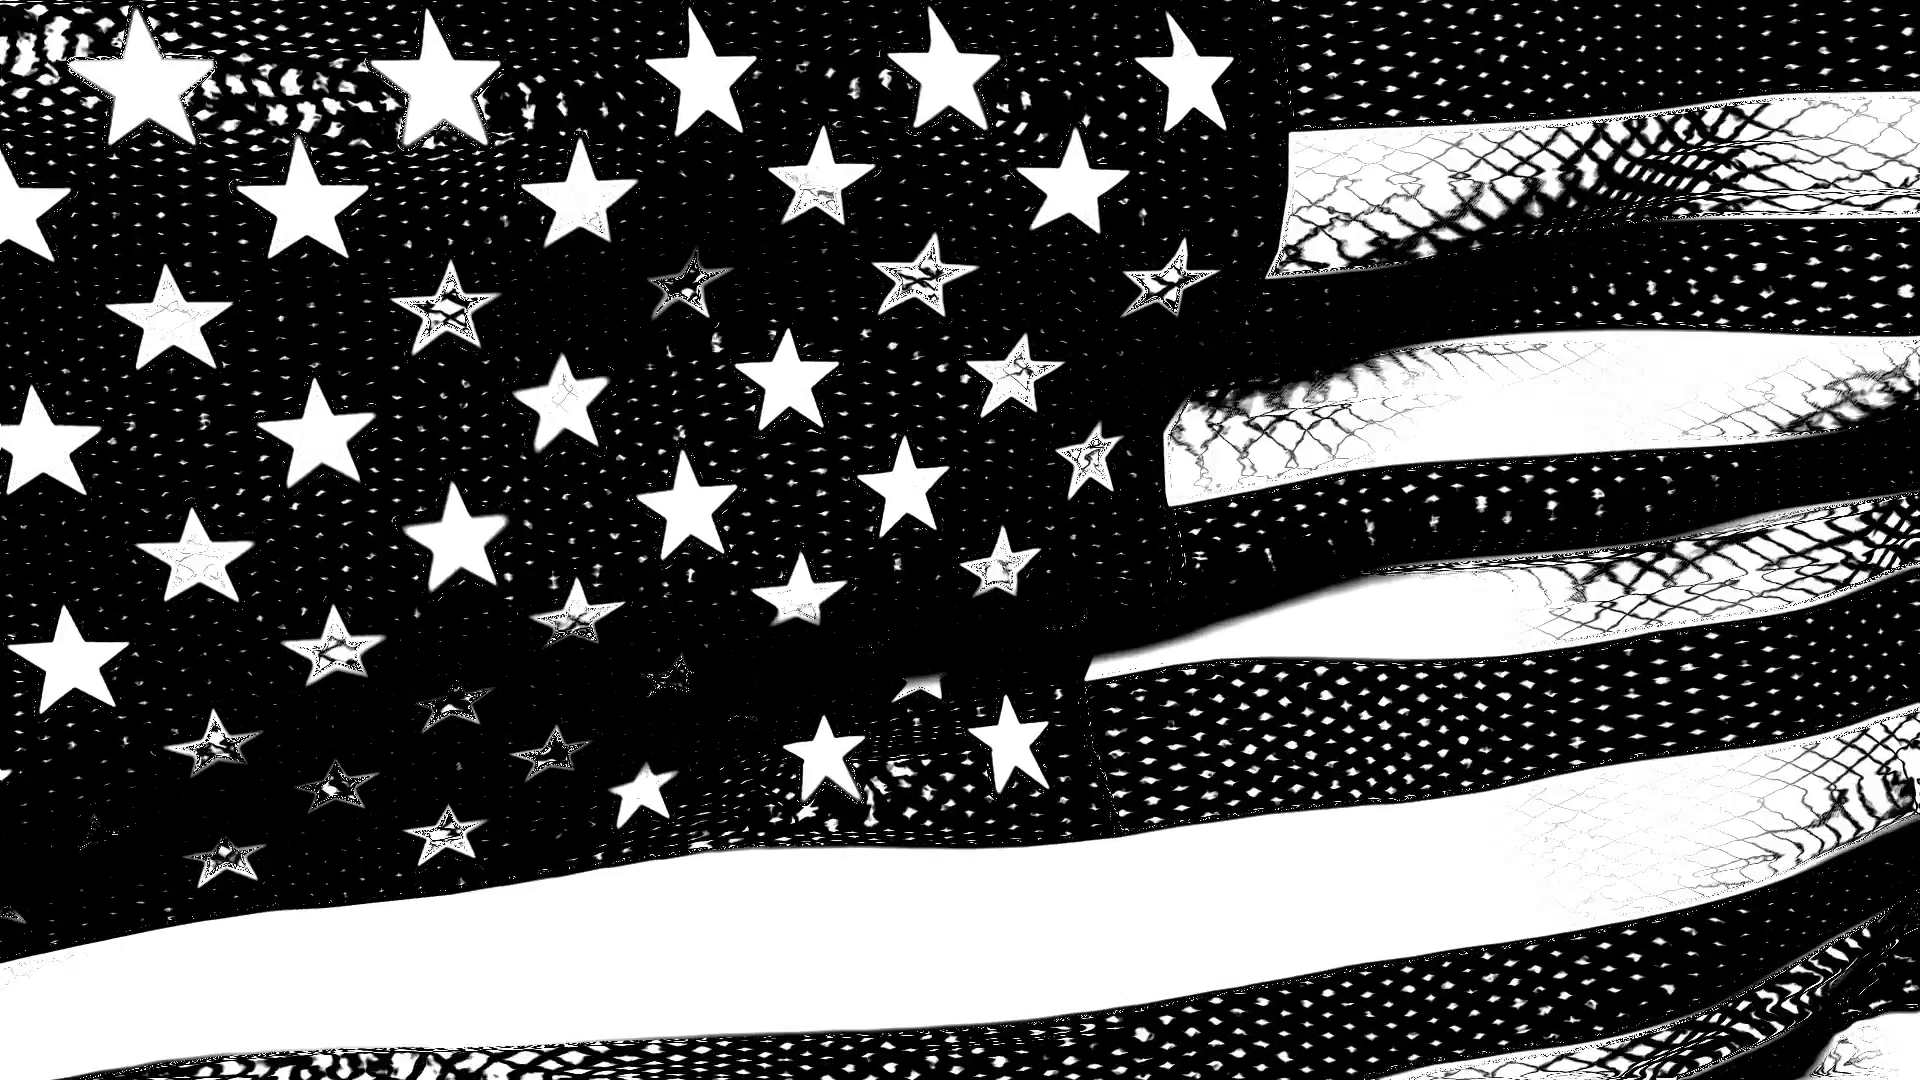 1920x1080 Old Glory 0212: A graphic black and white American flag waves in the ...